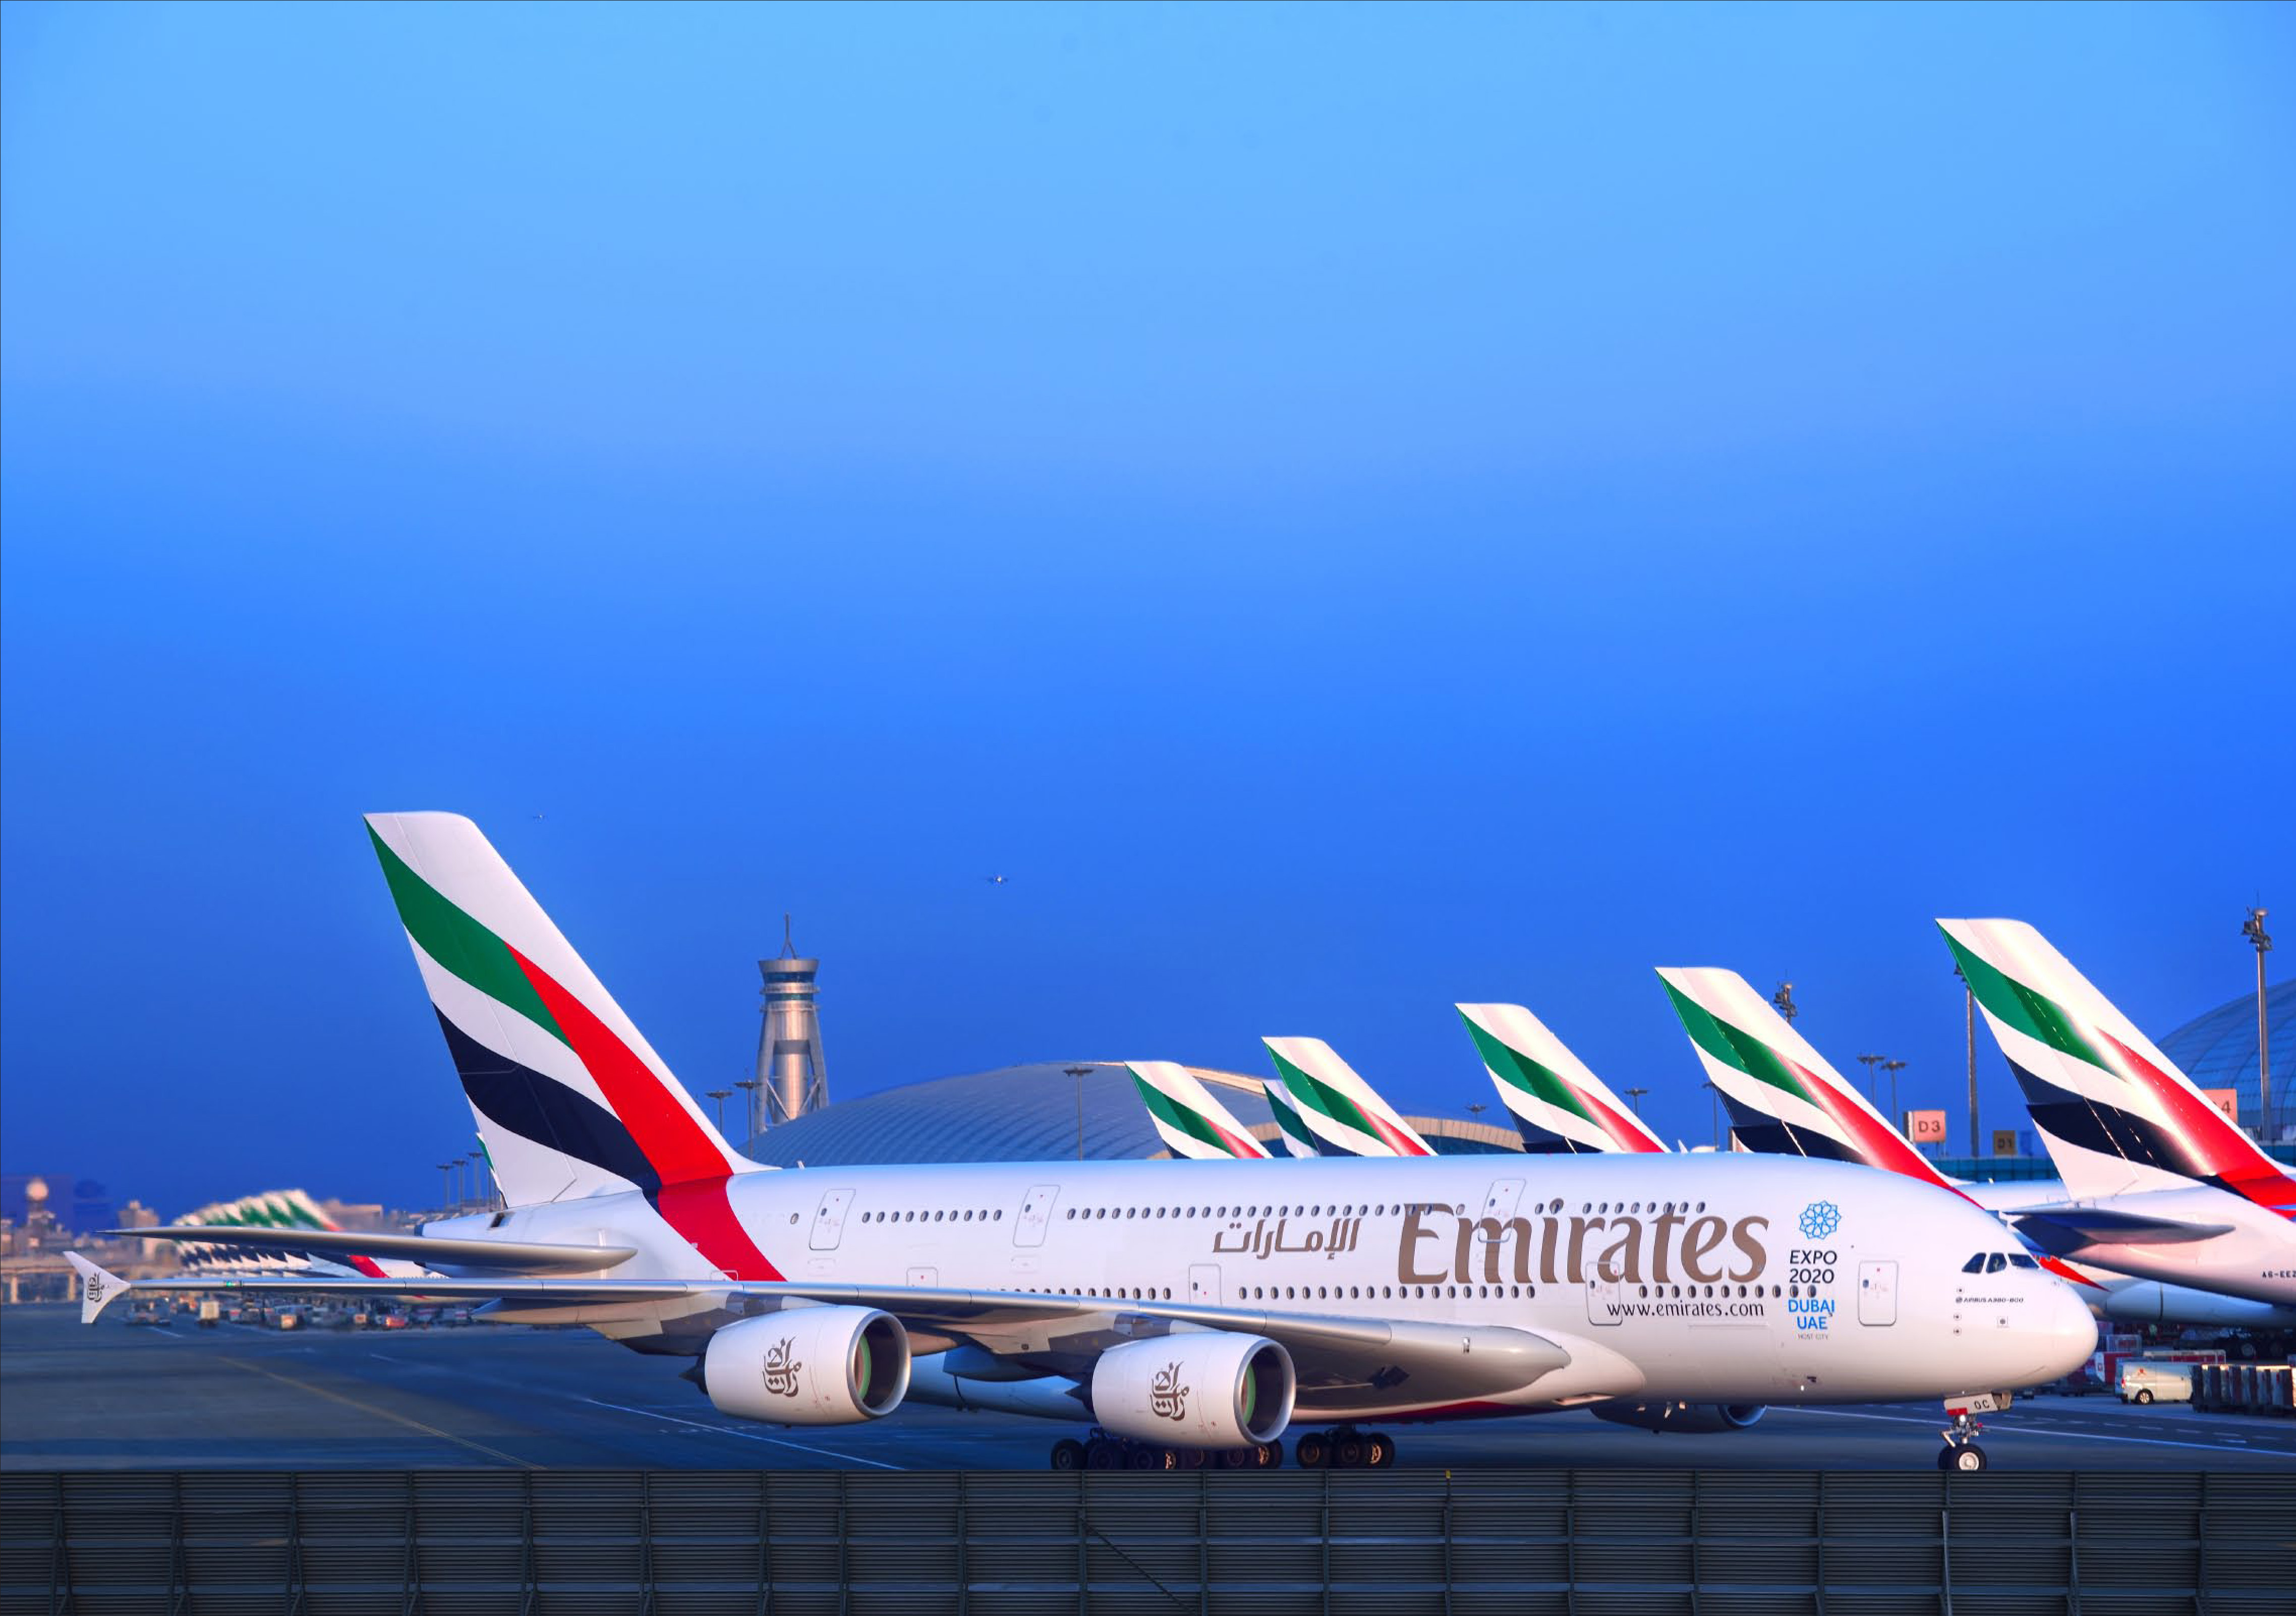 The-Emirates-Group_-comprising-Emirates-airline-and-dnata_-has-published-the-sixth-annual-environmental-report-outlining-the-Group_s-environmental-performance